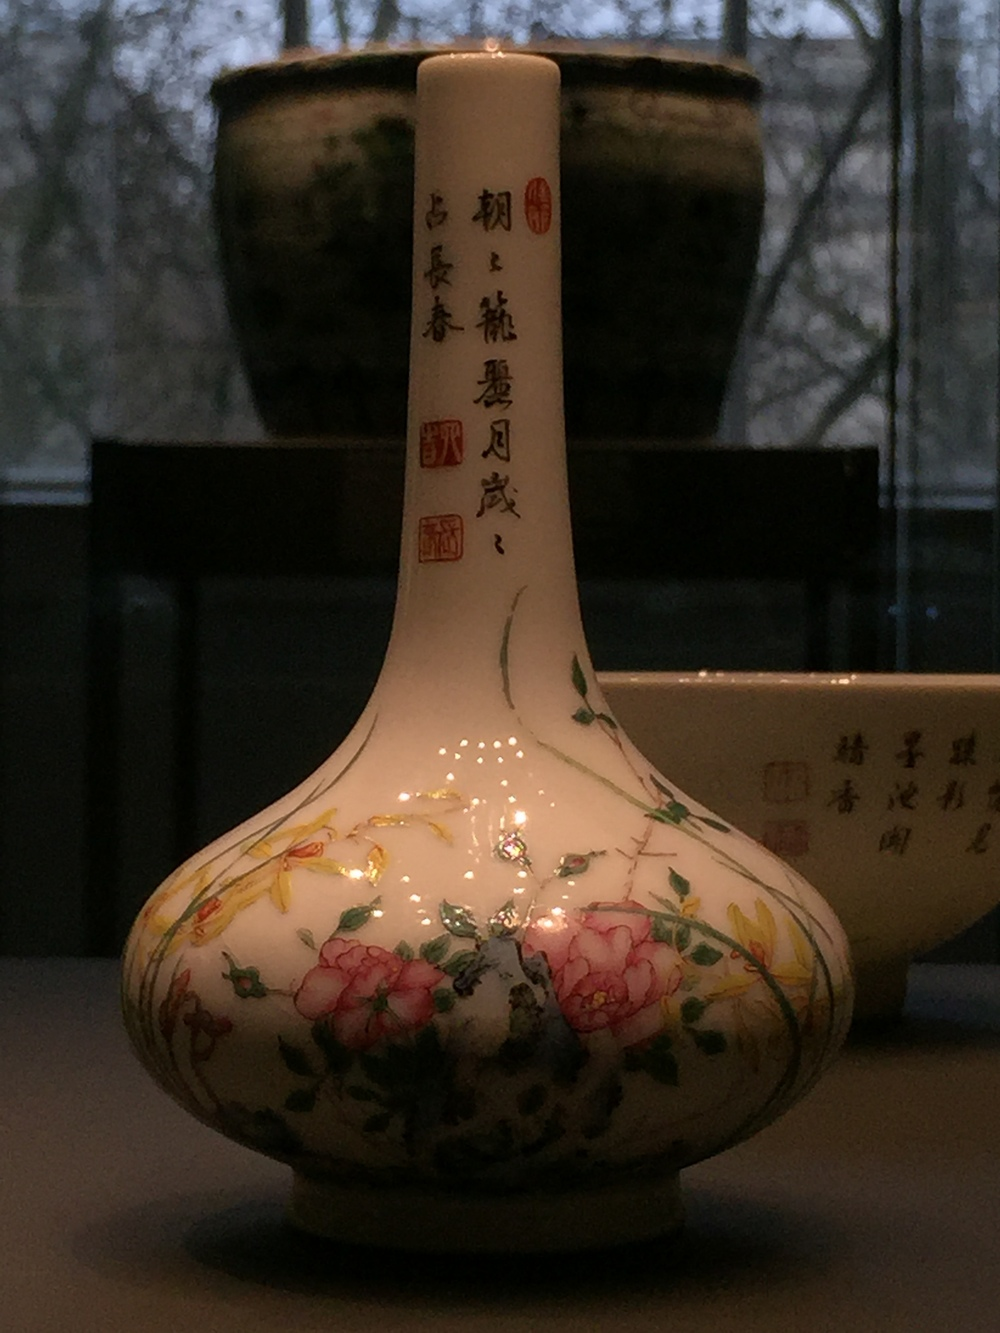 Chinese-Porcelain-British-Museum-Percival-David-jessewaugh.com-95.jpg